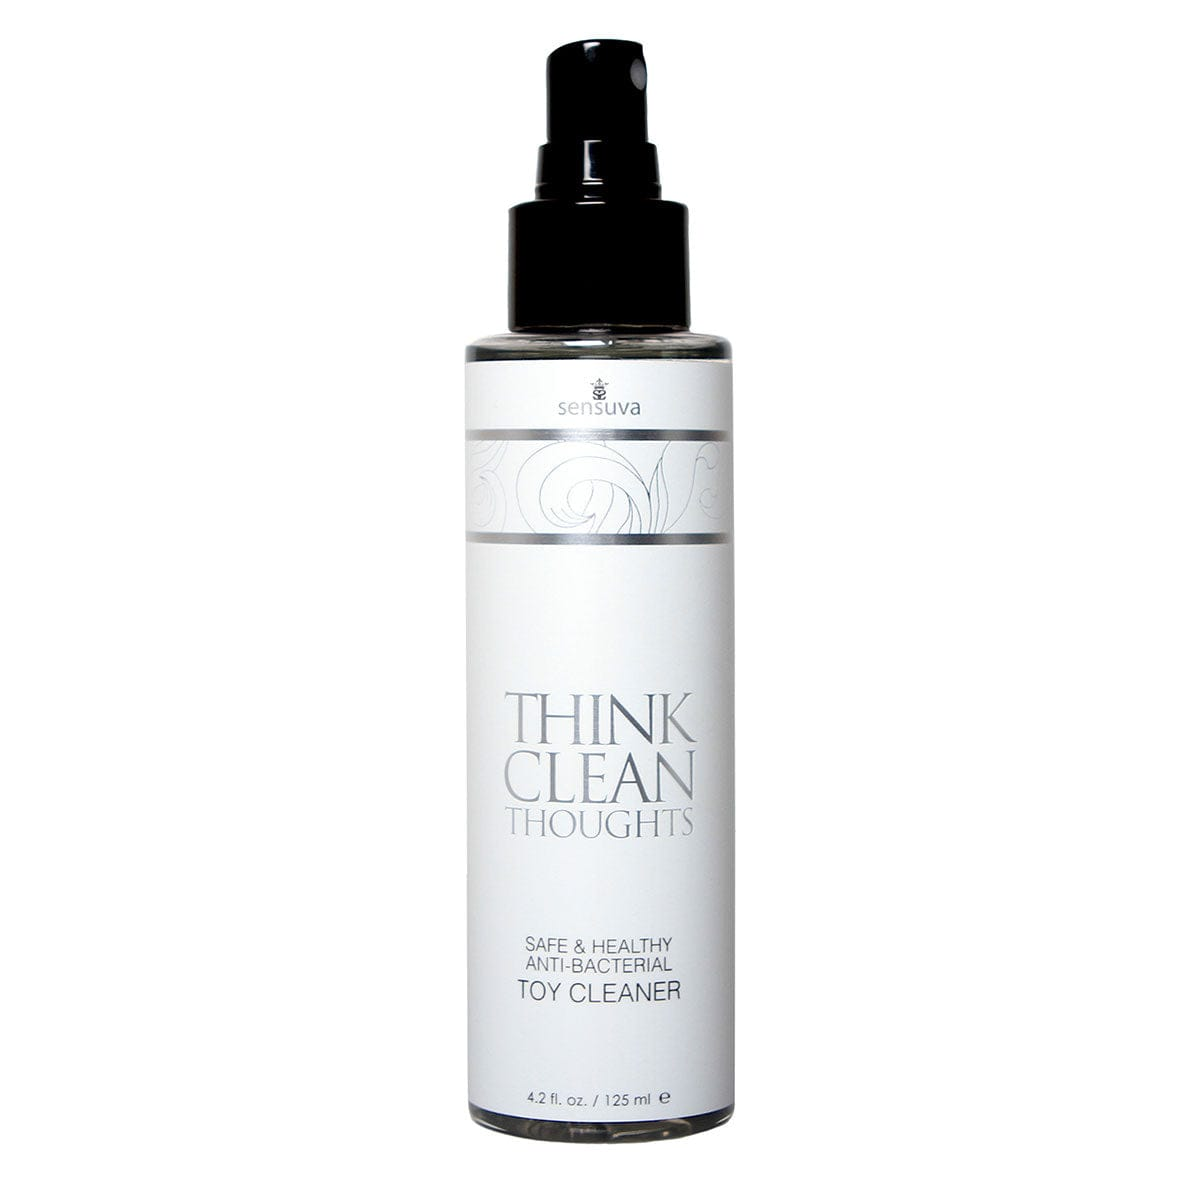 Think Clean Thoughts Toy Cleaner by Sensuva - rolik